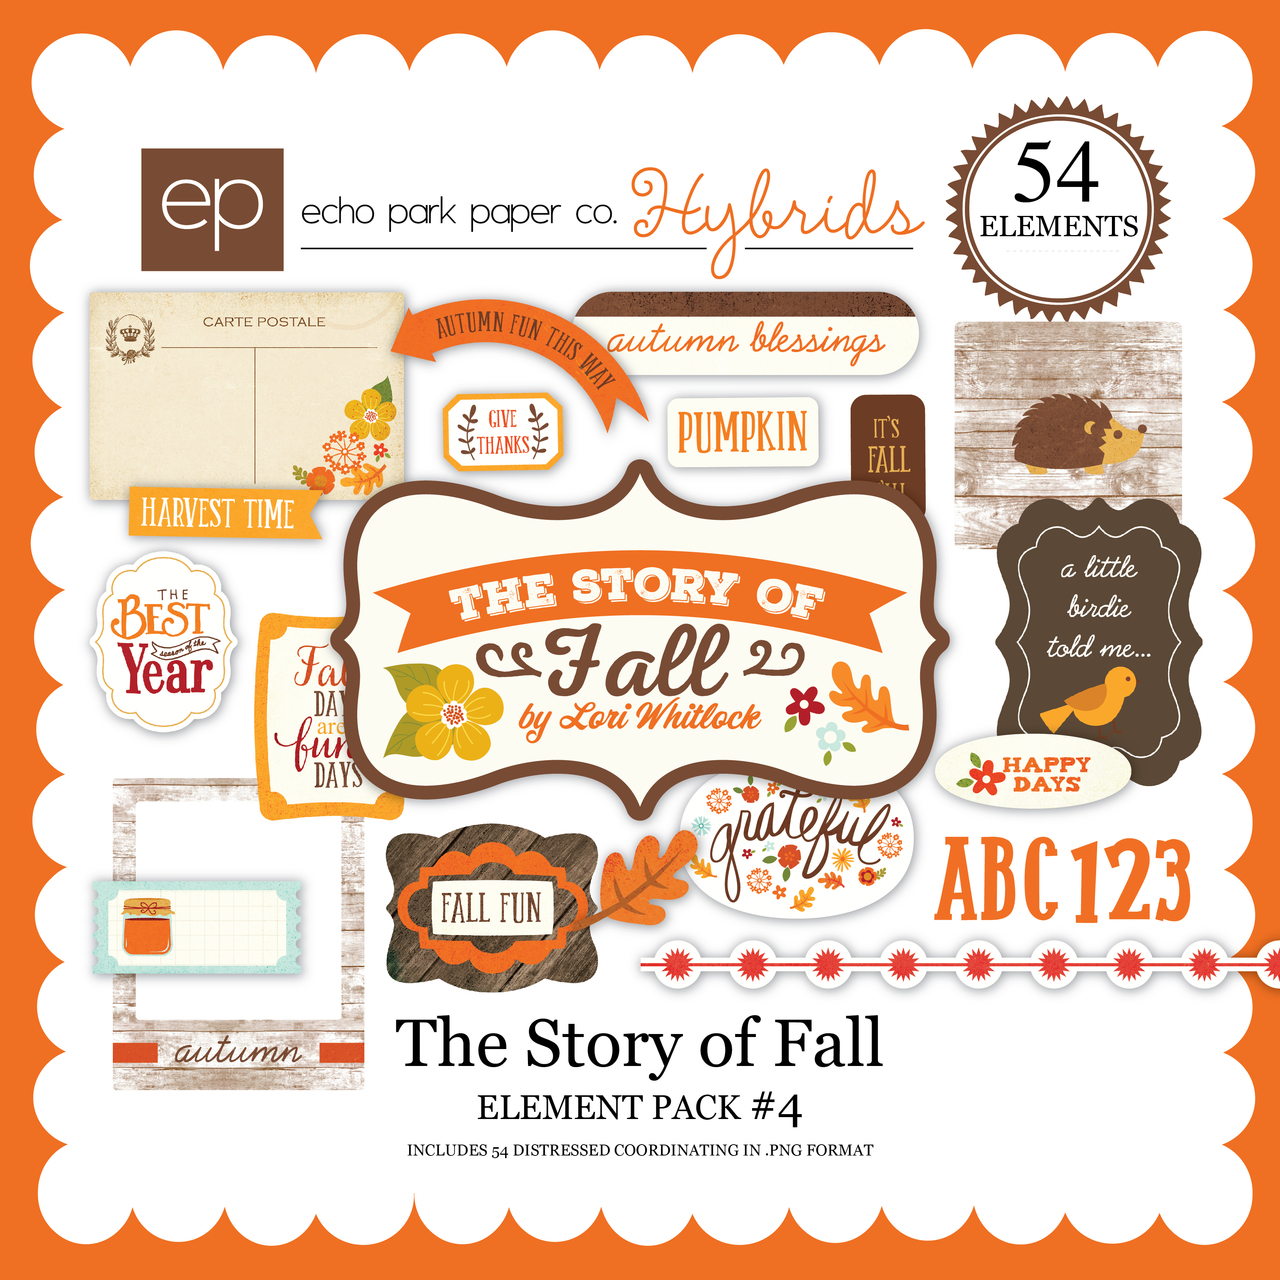 The Story of Fall Element Pack 4